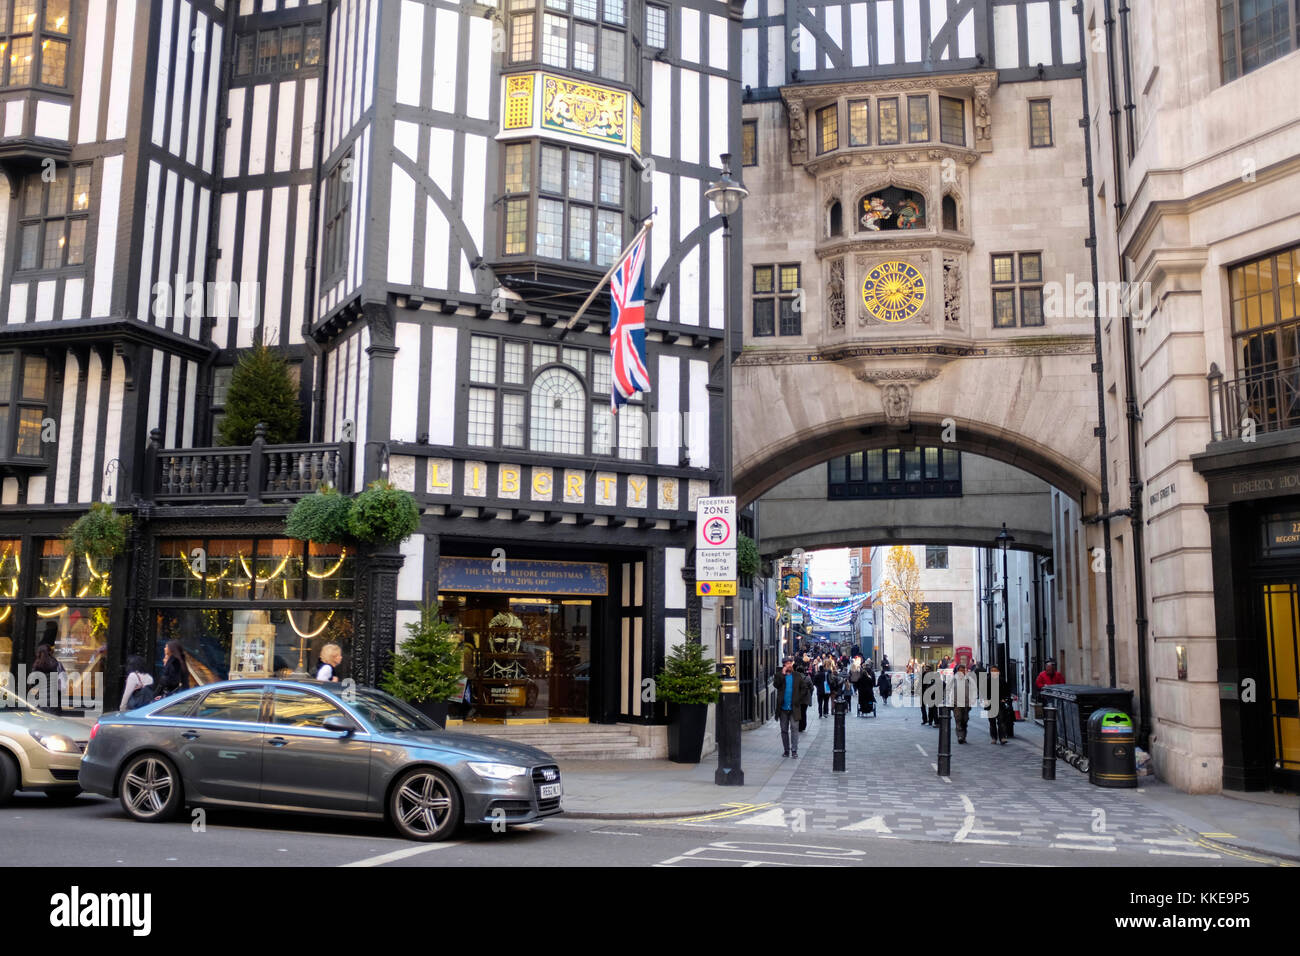 liberty london store stockfotos liberty london store bilder alamy. Black Bedroom Furniture Sets. Home Design Ideas